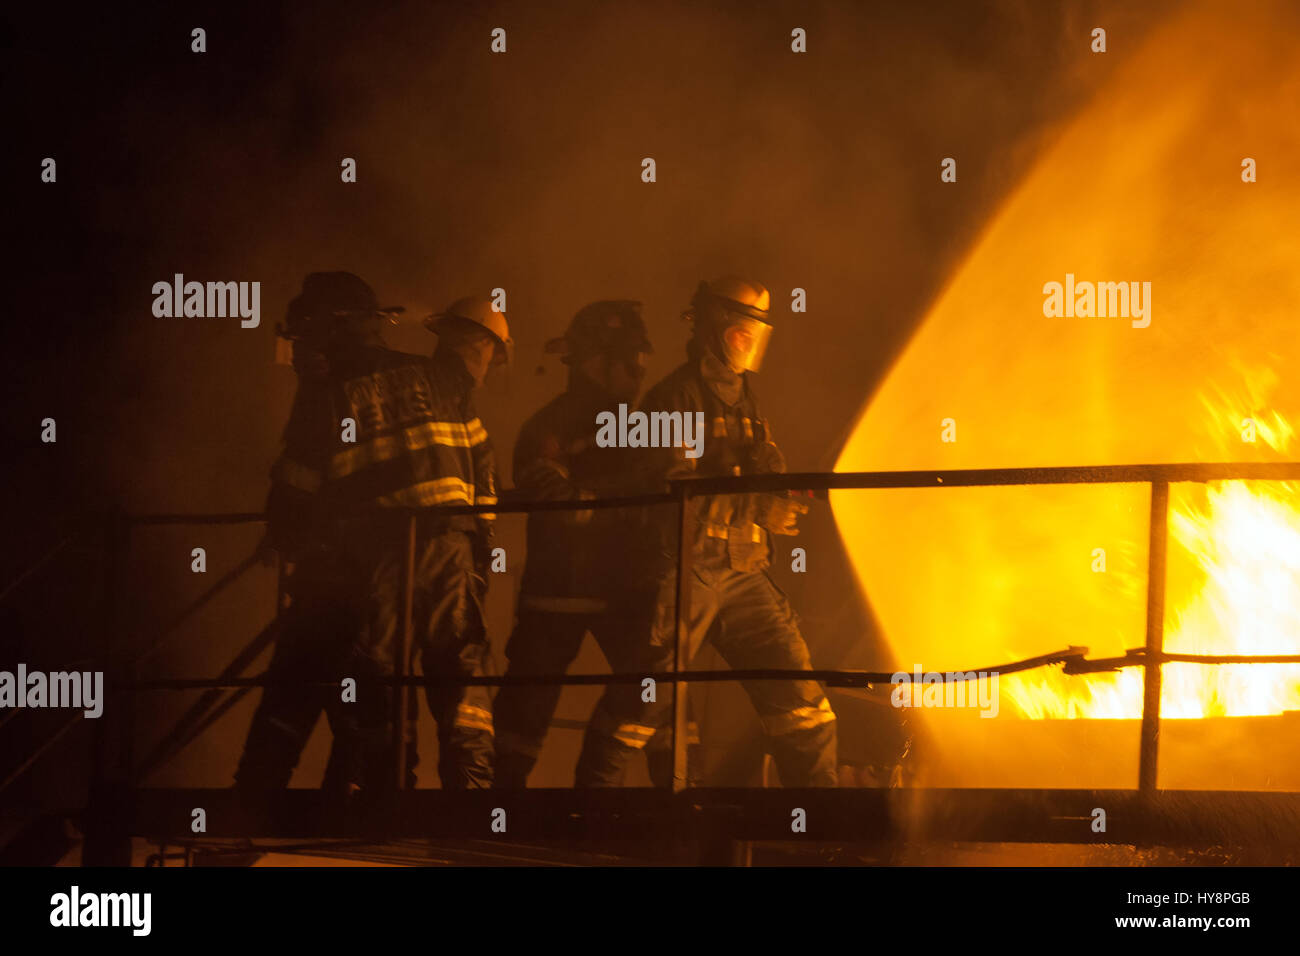 Firefighters using full spray to put out fire during firefighting exercise - Stock Image